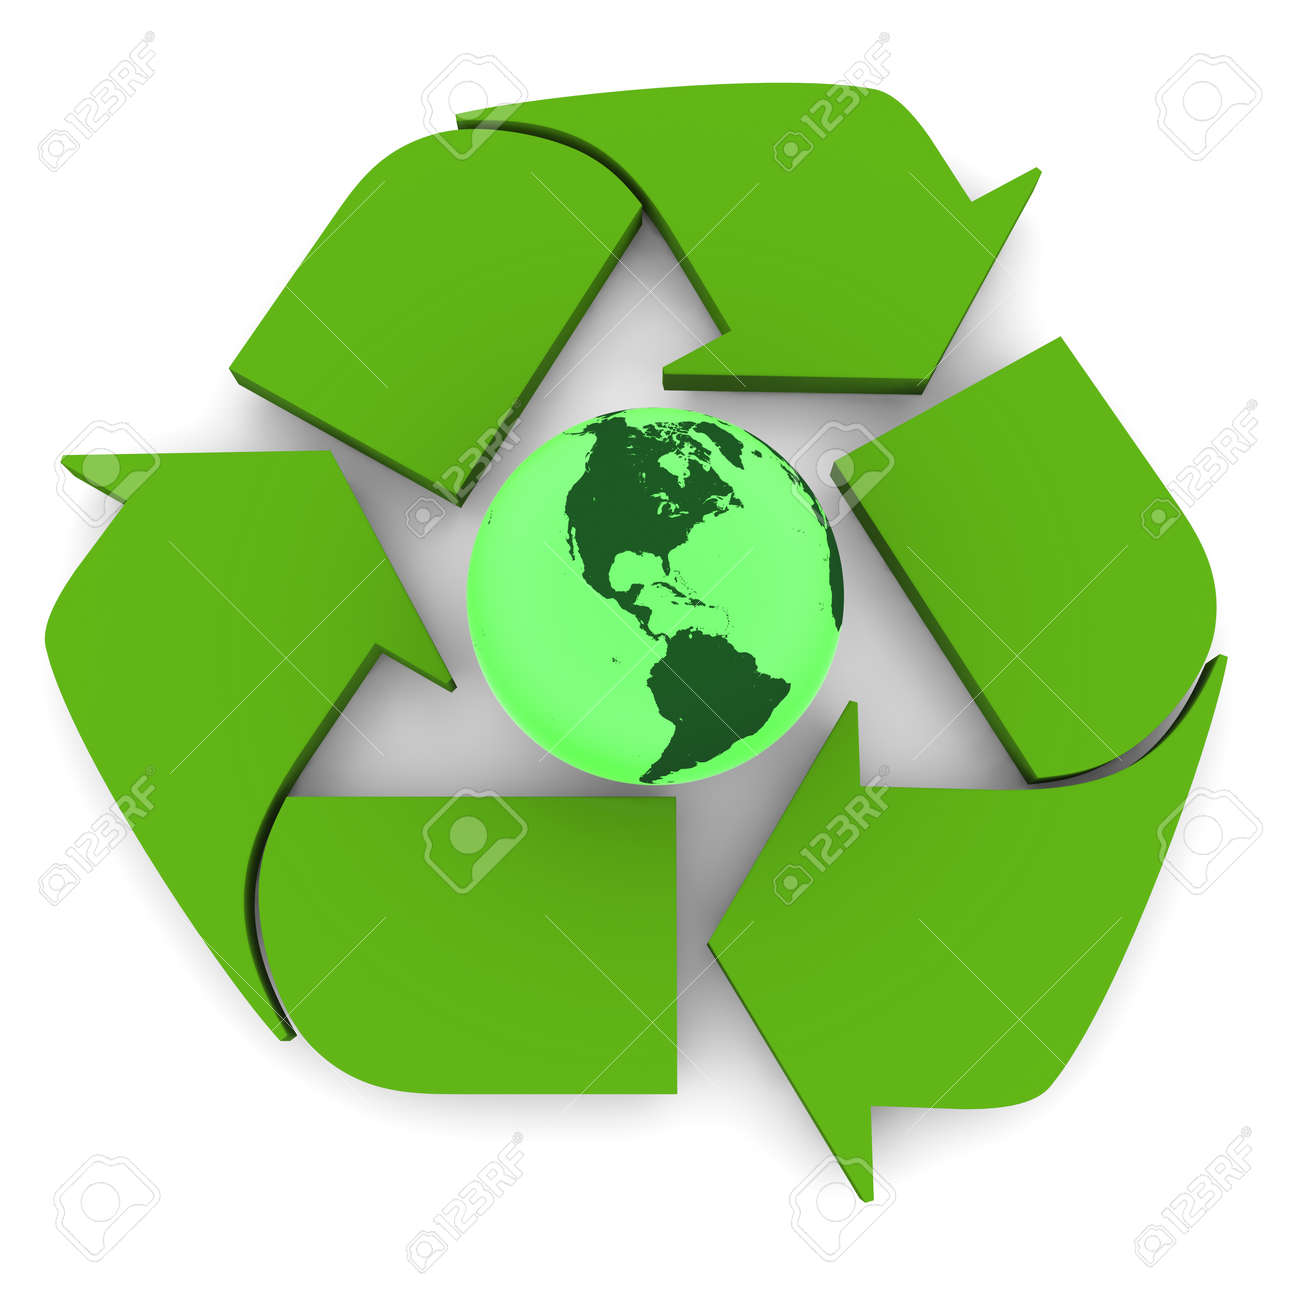 Glowing green planet earth inside recycling symbol concept of glowing green planet earth inside recycling symbol concept of conservation isolated on white background biocorpaavc Gallery